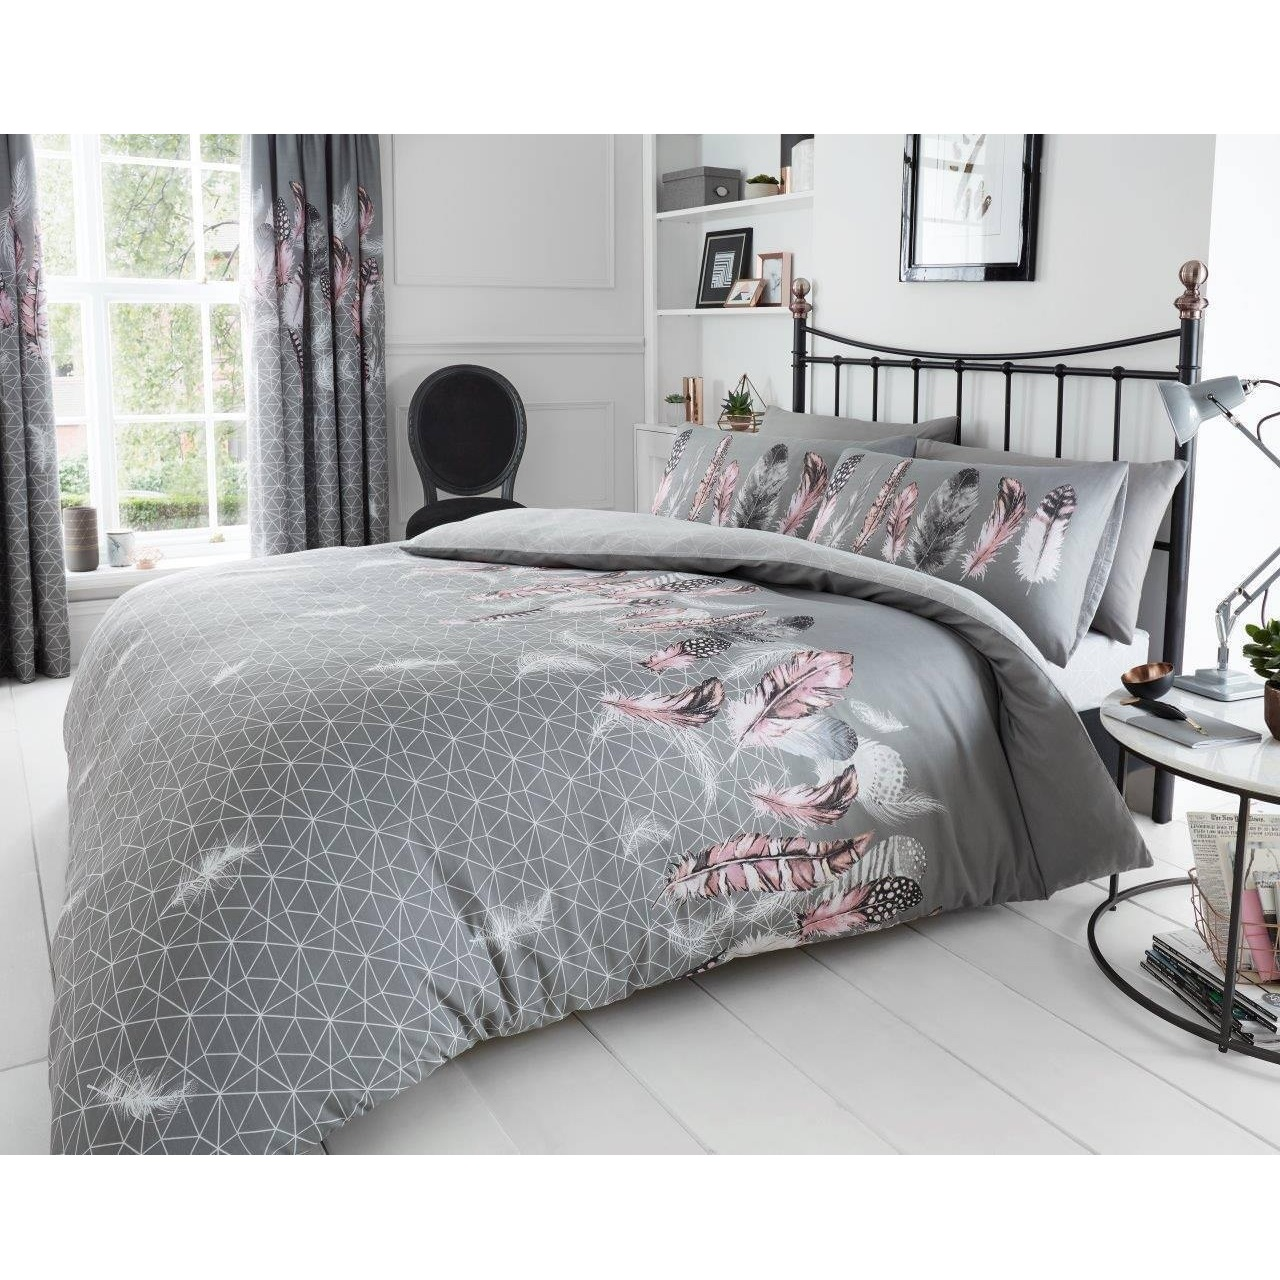 Details about FEATHERS DUVET COVER SET REVERSIBLE QUILT BED LINEN BEDDING  or CURTAINS SET GREY